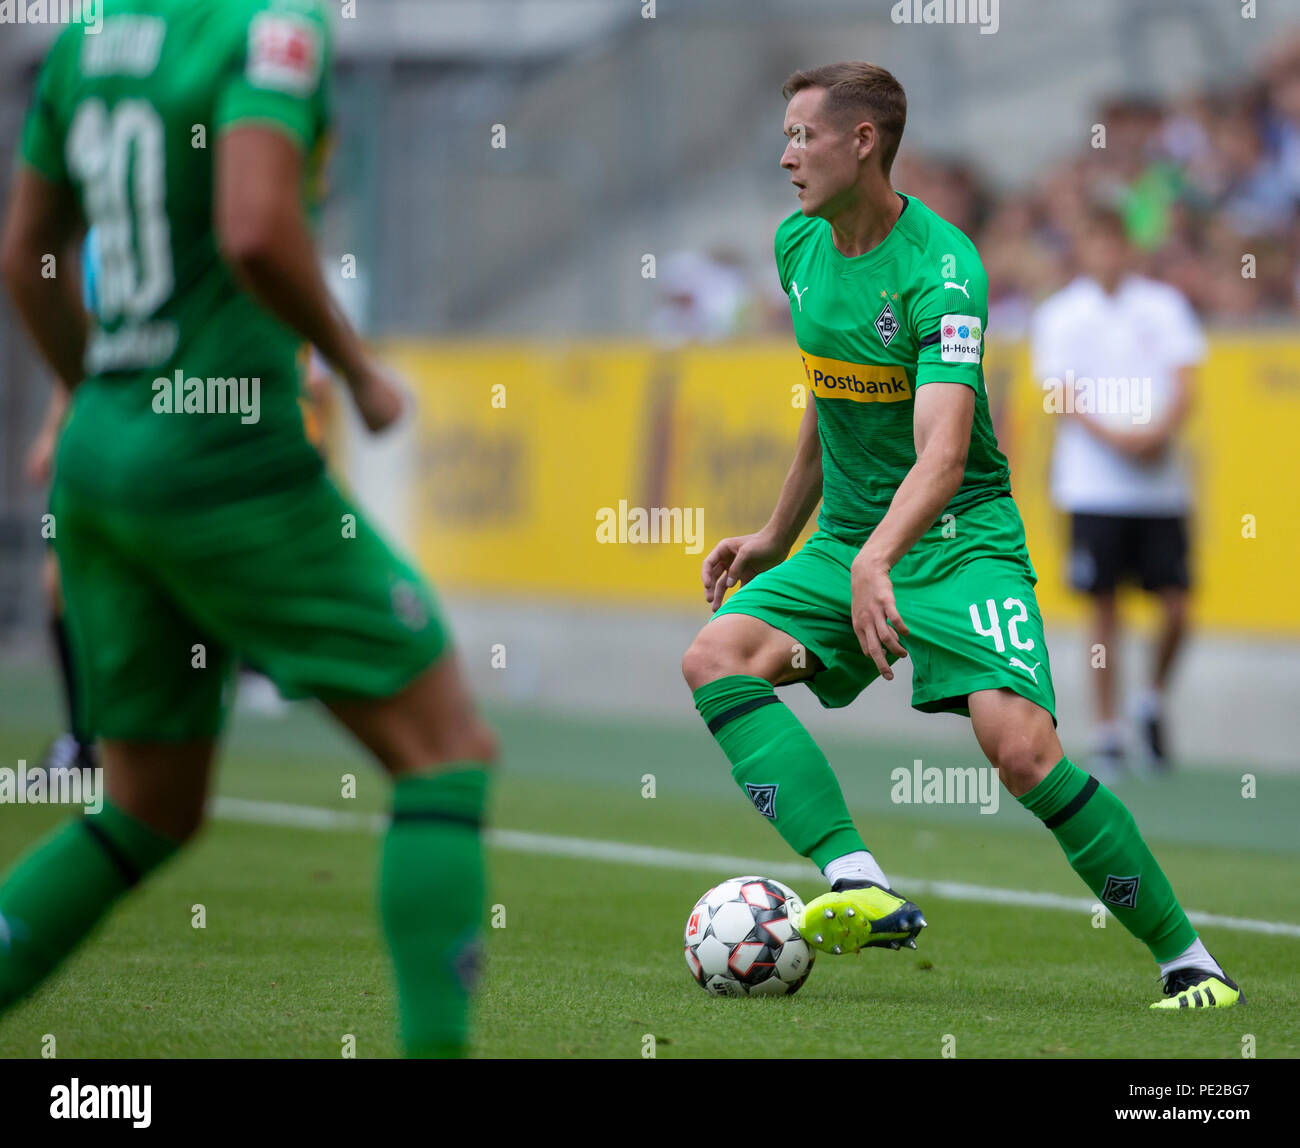 Moenchengladbach, Germany August 12 2018, friendly match, Borussia Moenchengladbach vs FC Wegberg-Beeck: Florian Mayer (BMG)  in action.               Credit: Juergen Schwarz/Alamy Live News - Stock Image